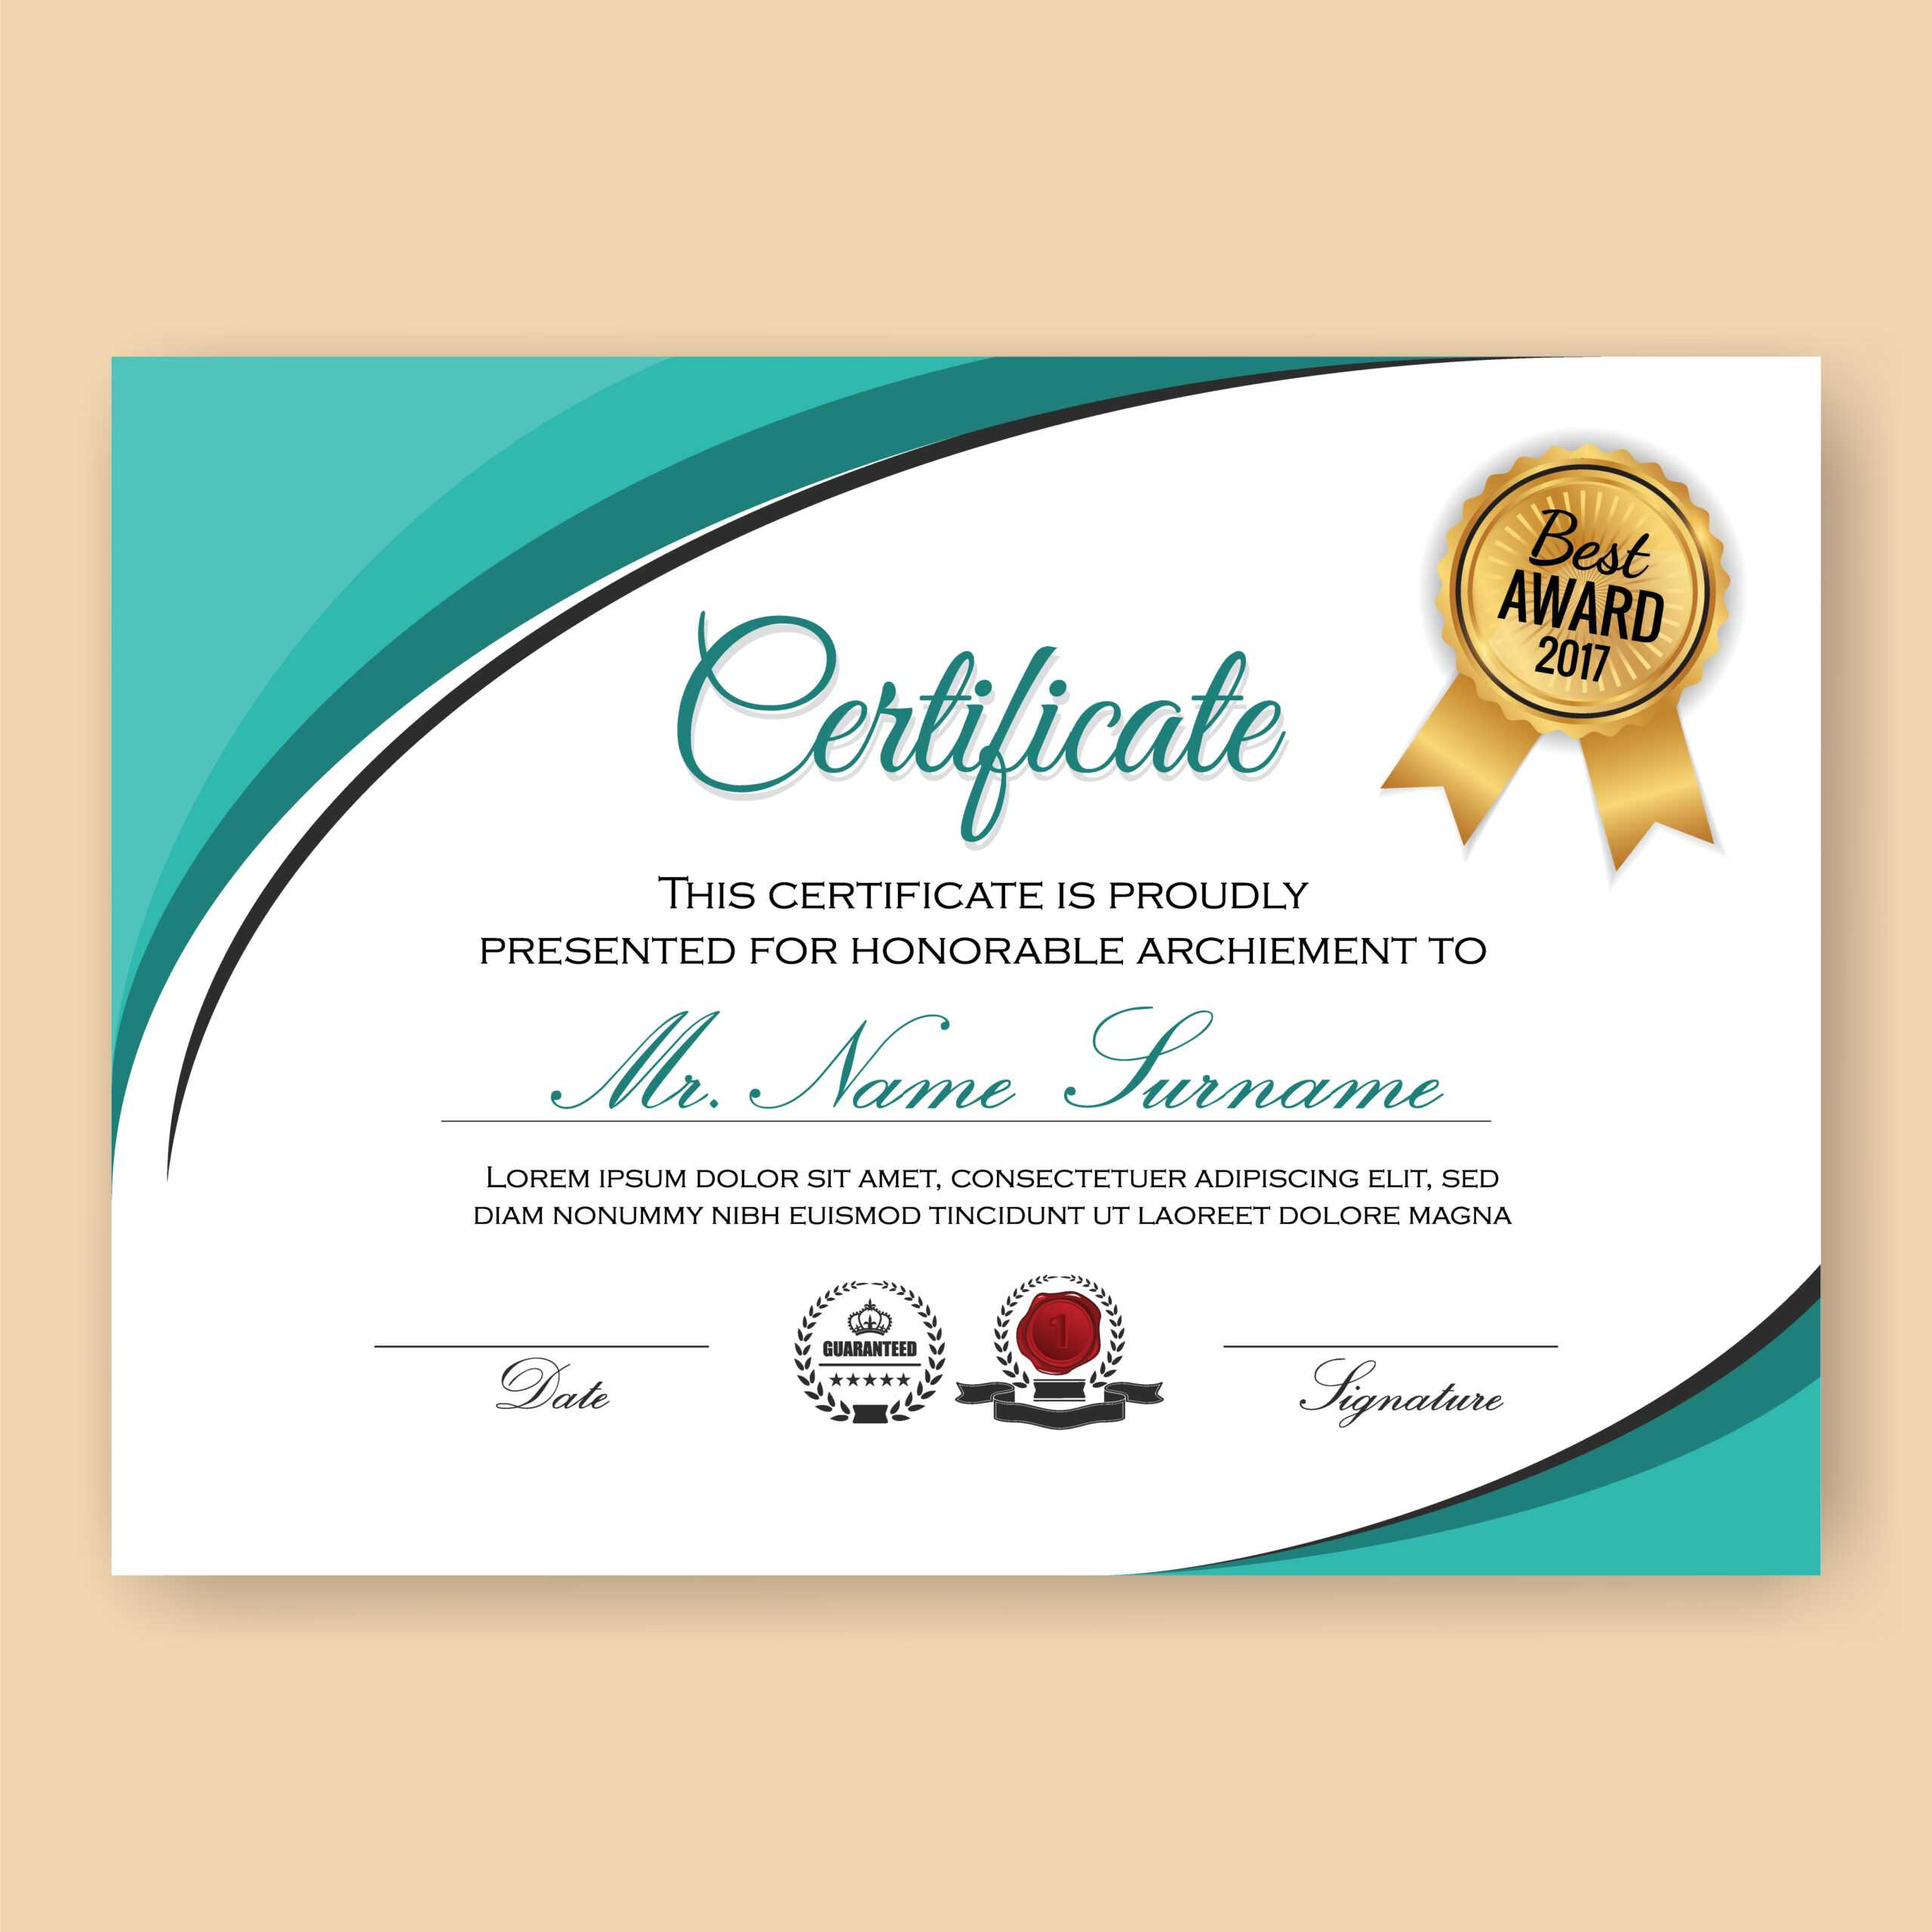 Certificate Border Free Vector Art - (14,563 Free Downloads) With Certificate Border Design Templates